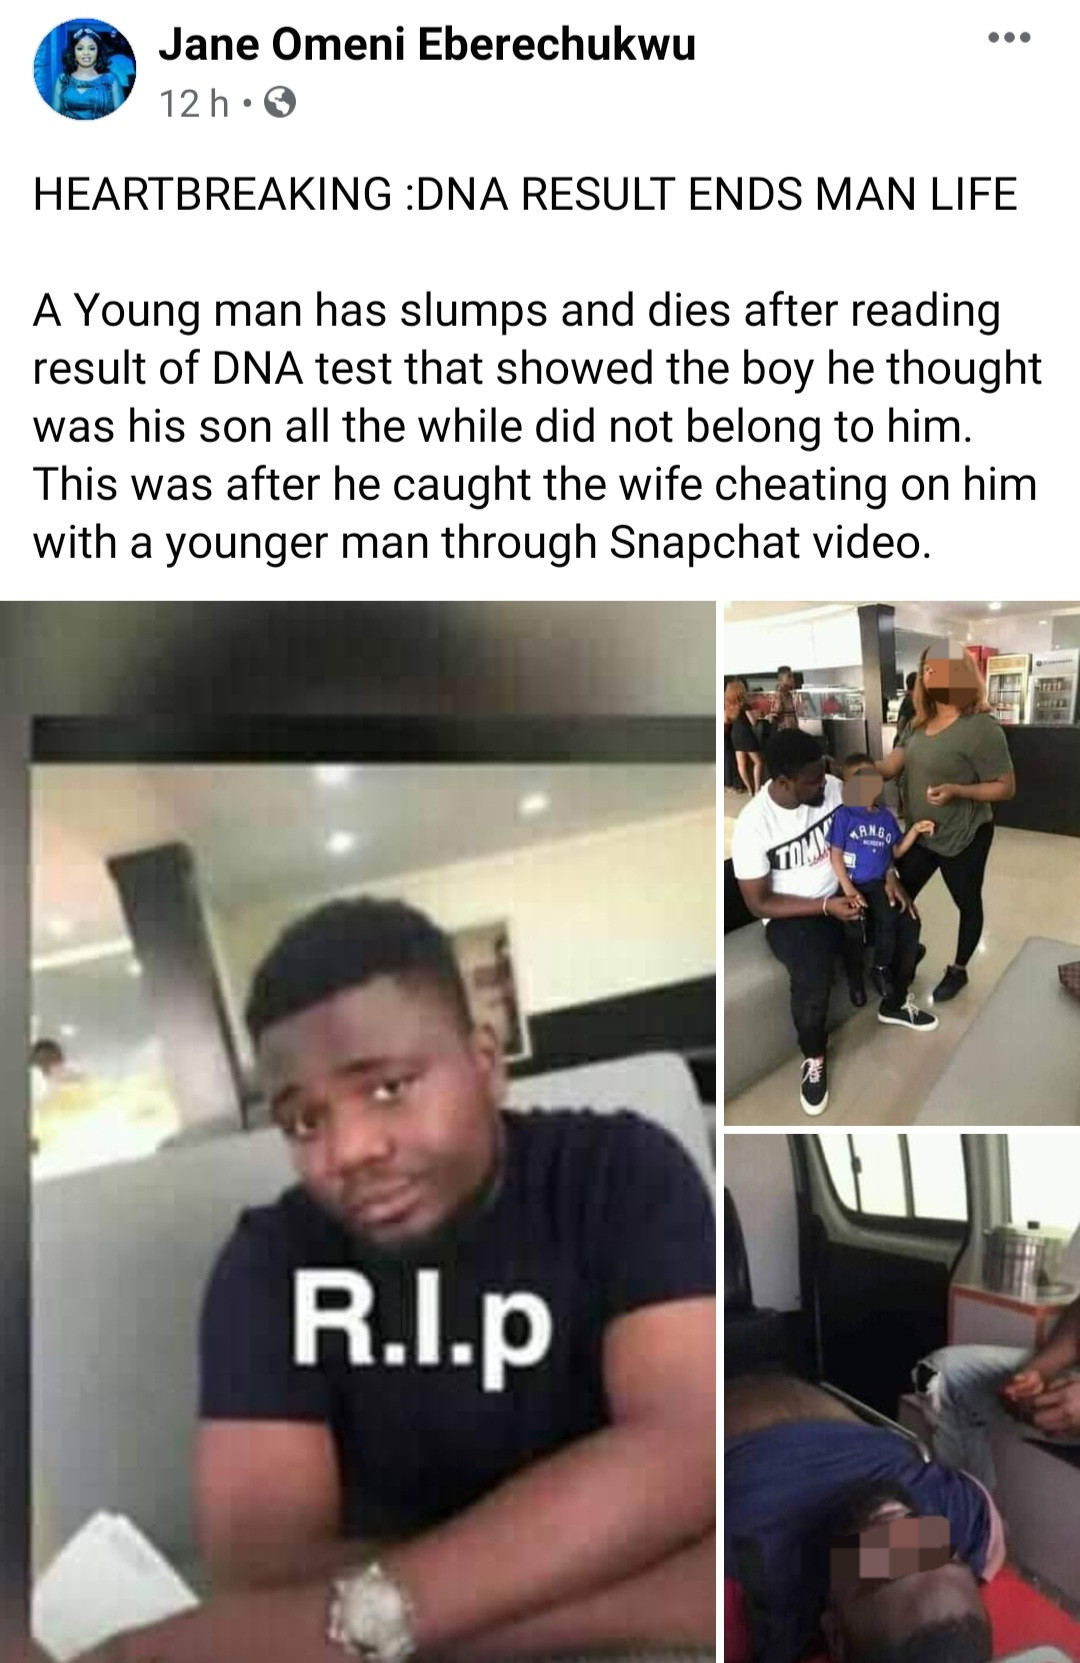 Reactions as man slumps and die after DNA test allegedly showed he